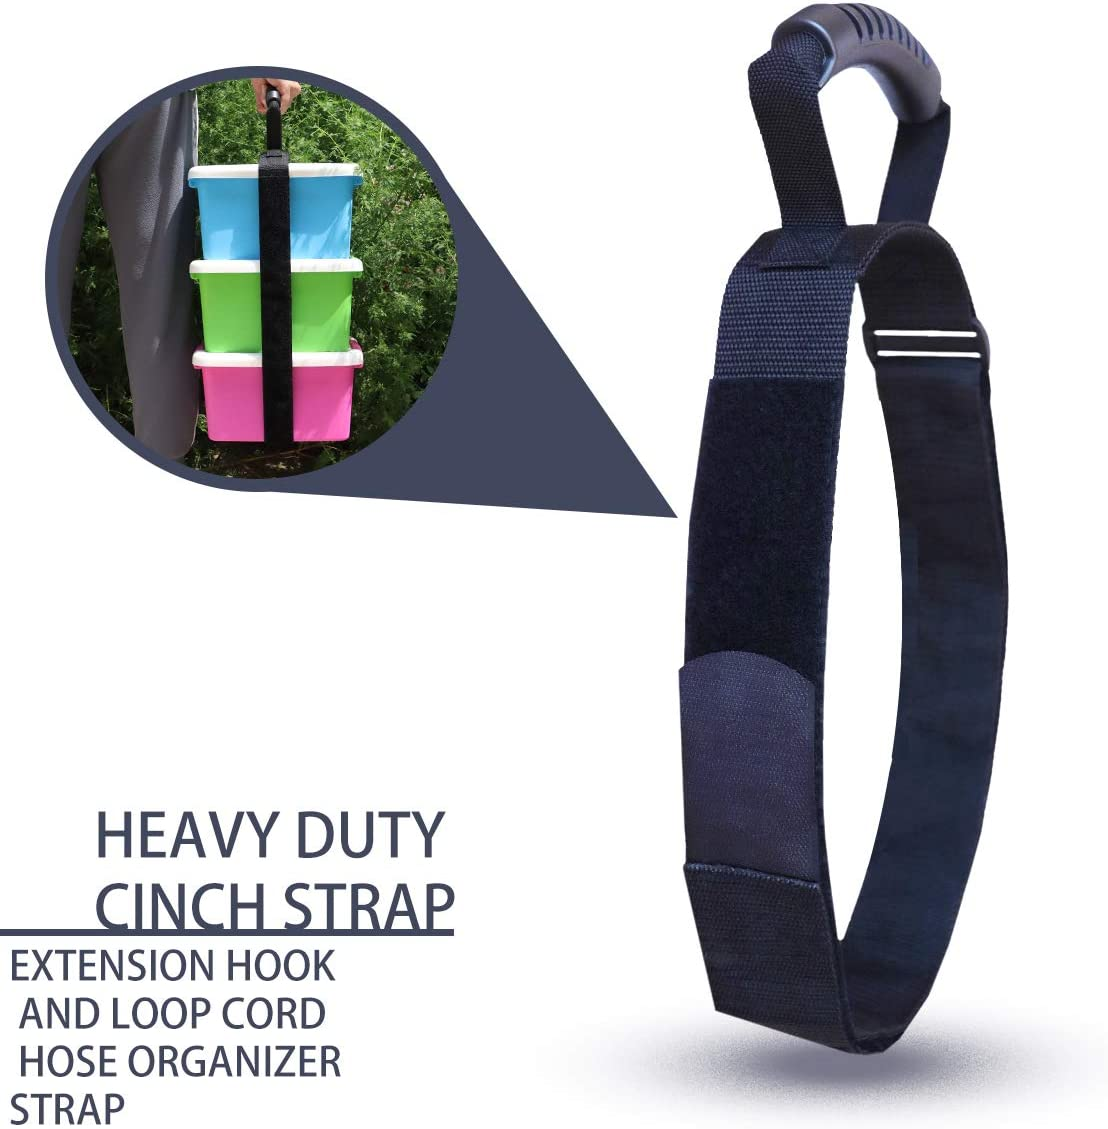 Heavy Duty Carrying Strap Holder for Bulky Item with Handle XL All Purpose Fully Adjustable Strap Cinches Tight for a Secure Hold Max Load for 154 LBs Ideal for Carrying Large Bulky Items